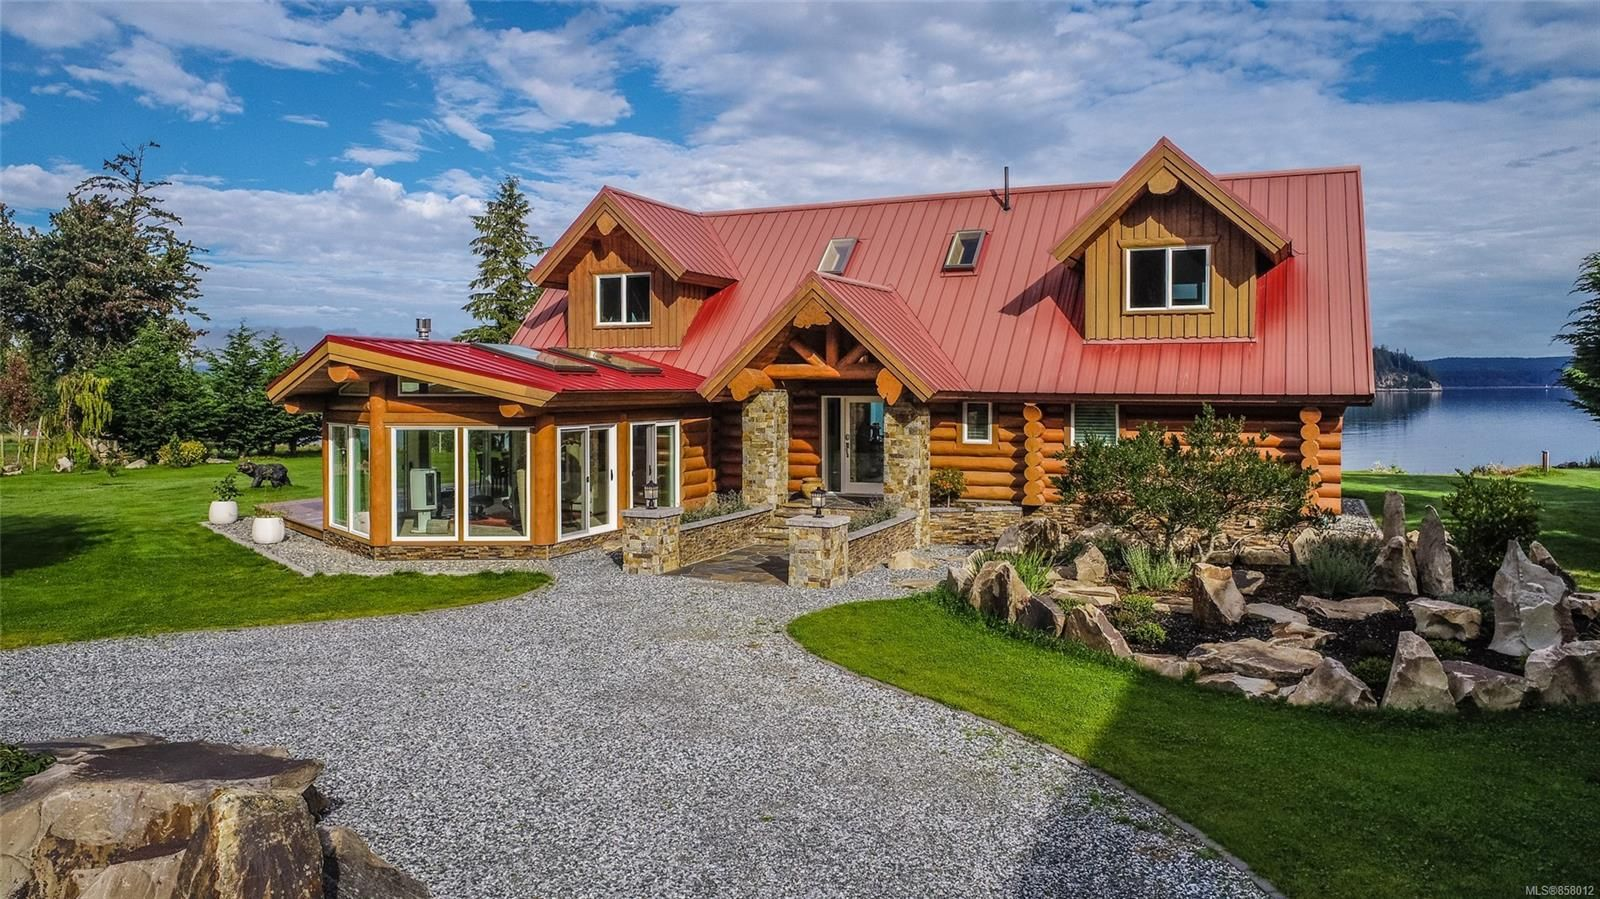 Photo 95: Photos: 6030 MINE Rd in : NI Port McNeill House for sale (North Island)  : MLS®# 858012